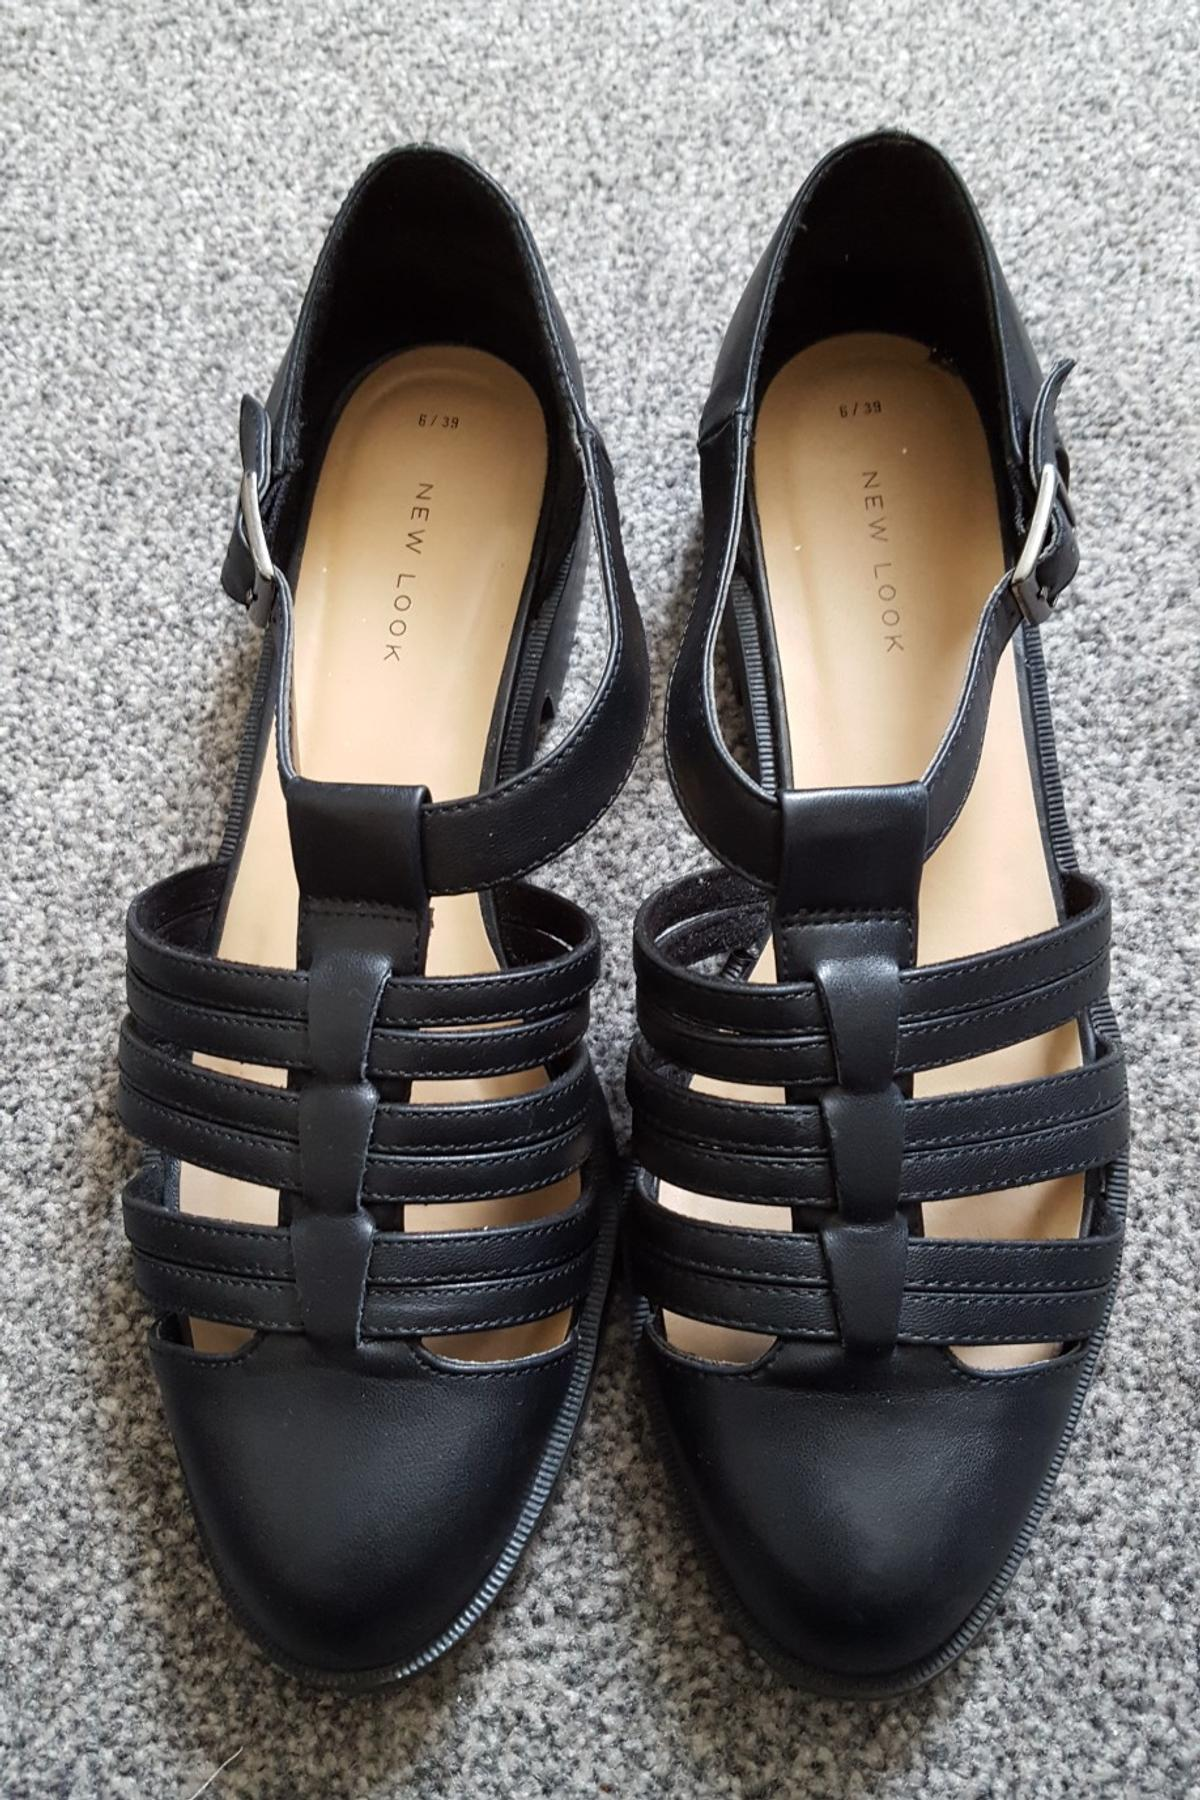 fashion style good service cheapest price Ladies shoes / sandals size 6 from new look